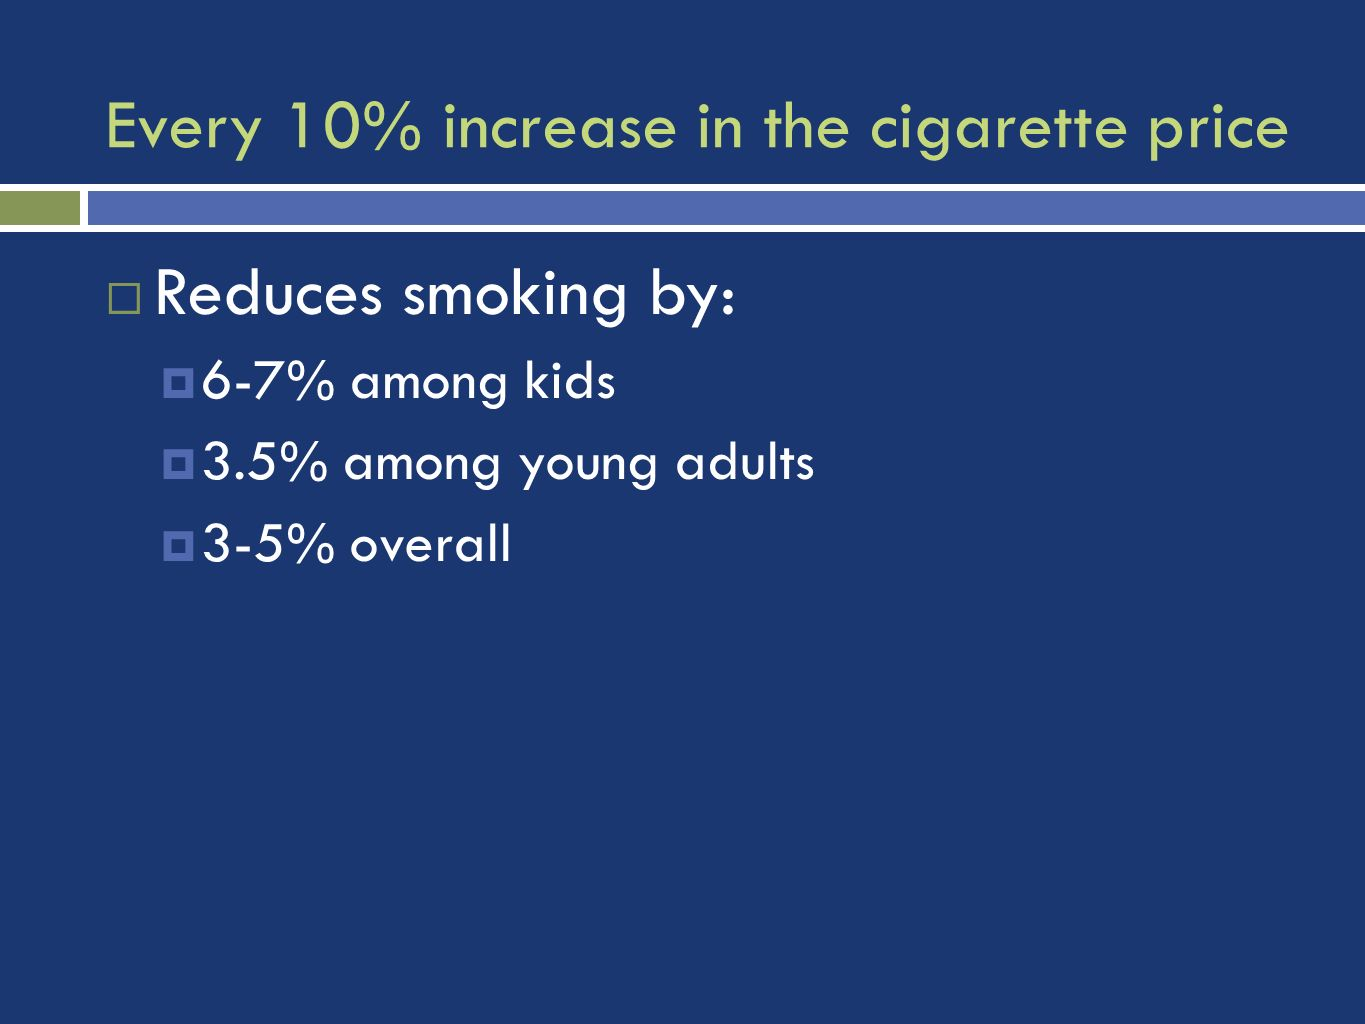 Every 10% increase in the cigarette price Reduces smoking by: 6-7% among kids 3.5% among young adults 3-5% overall